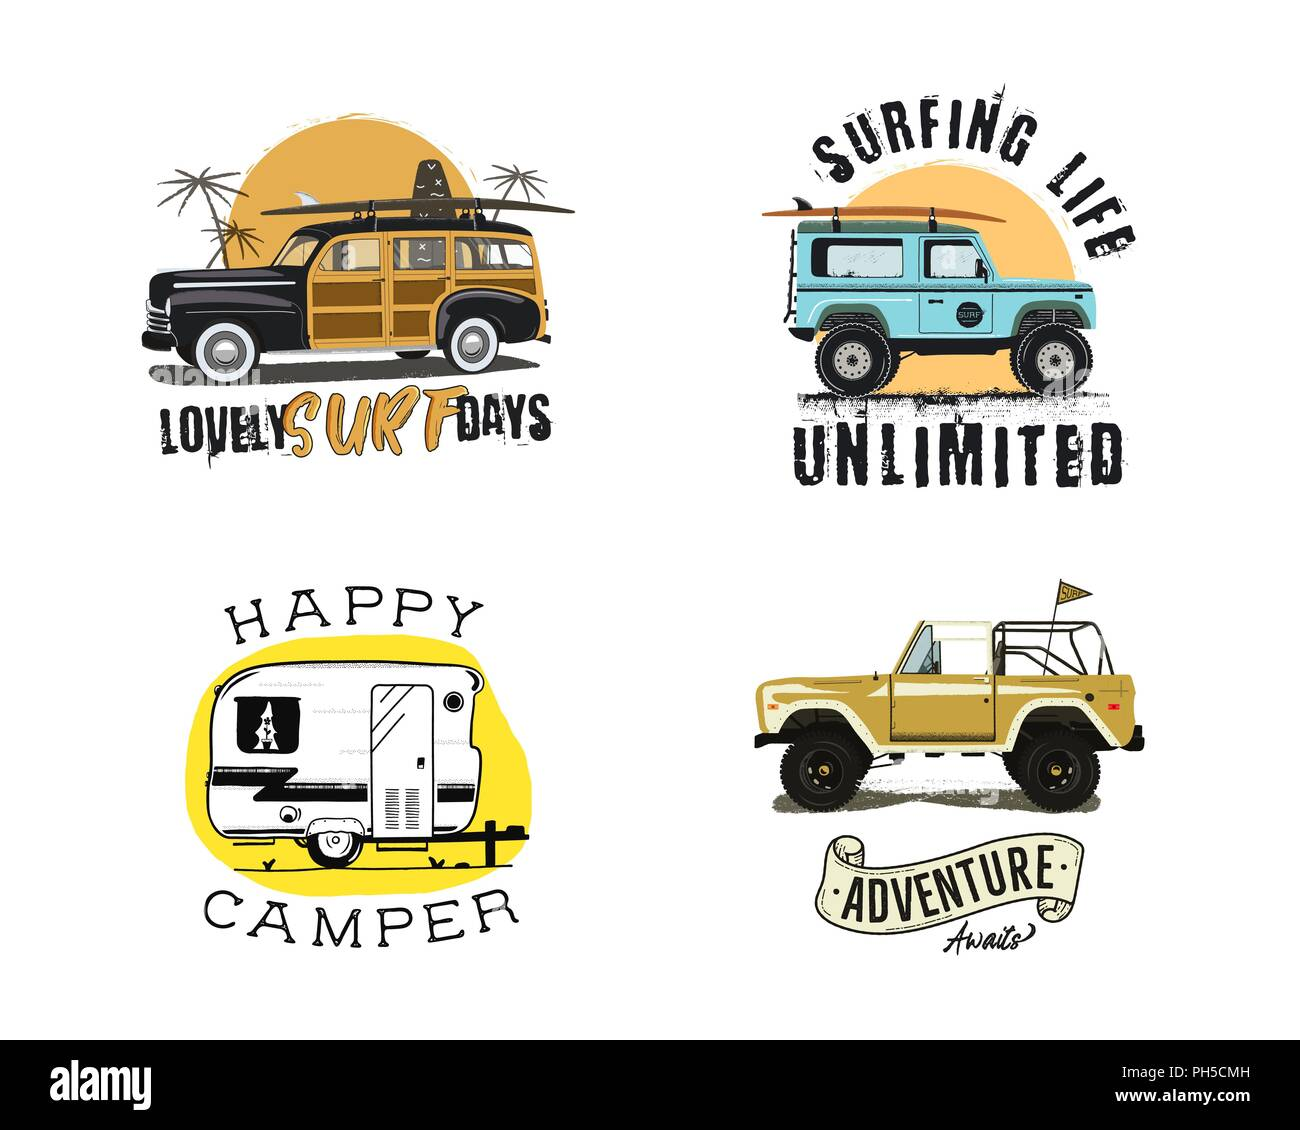 Vintage surfing graphics and emblems set for web design or print. Surfer logo templates. Surf Badges. Summer fun. Surfboard elements. Outdoors activity - boarding on waves. Vector hipster insignias - Stock Image